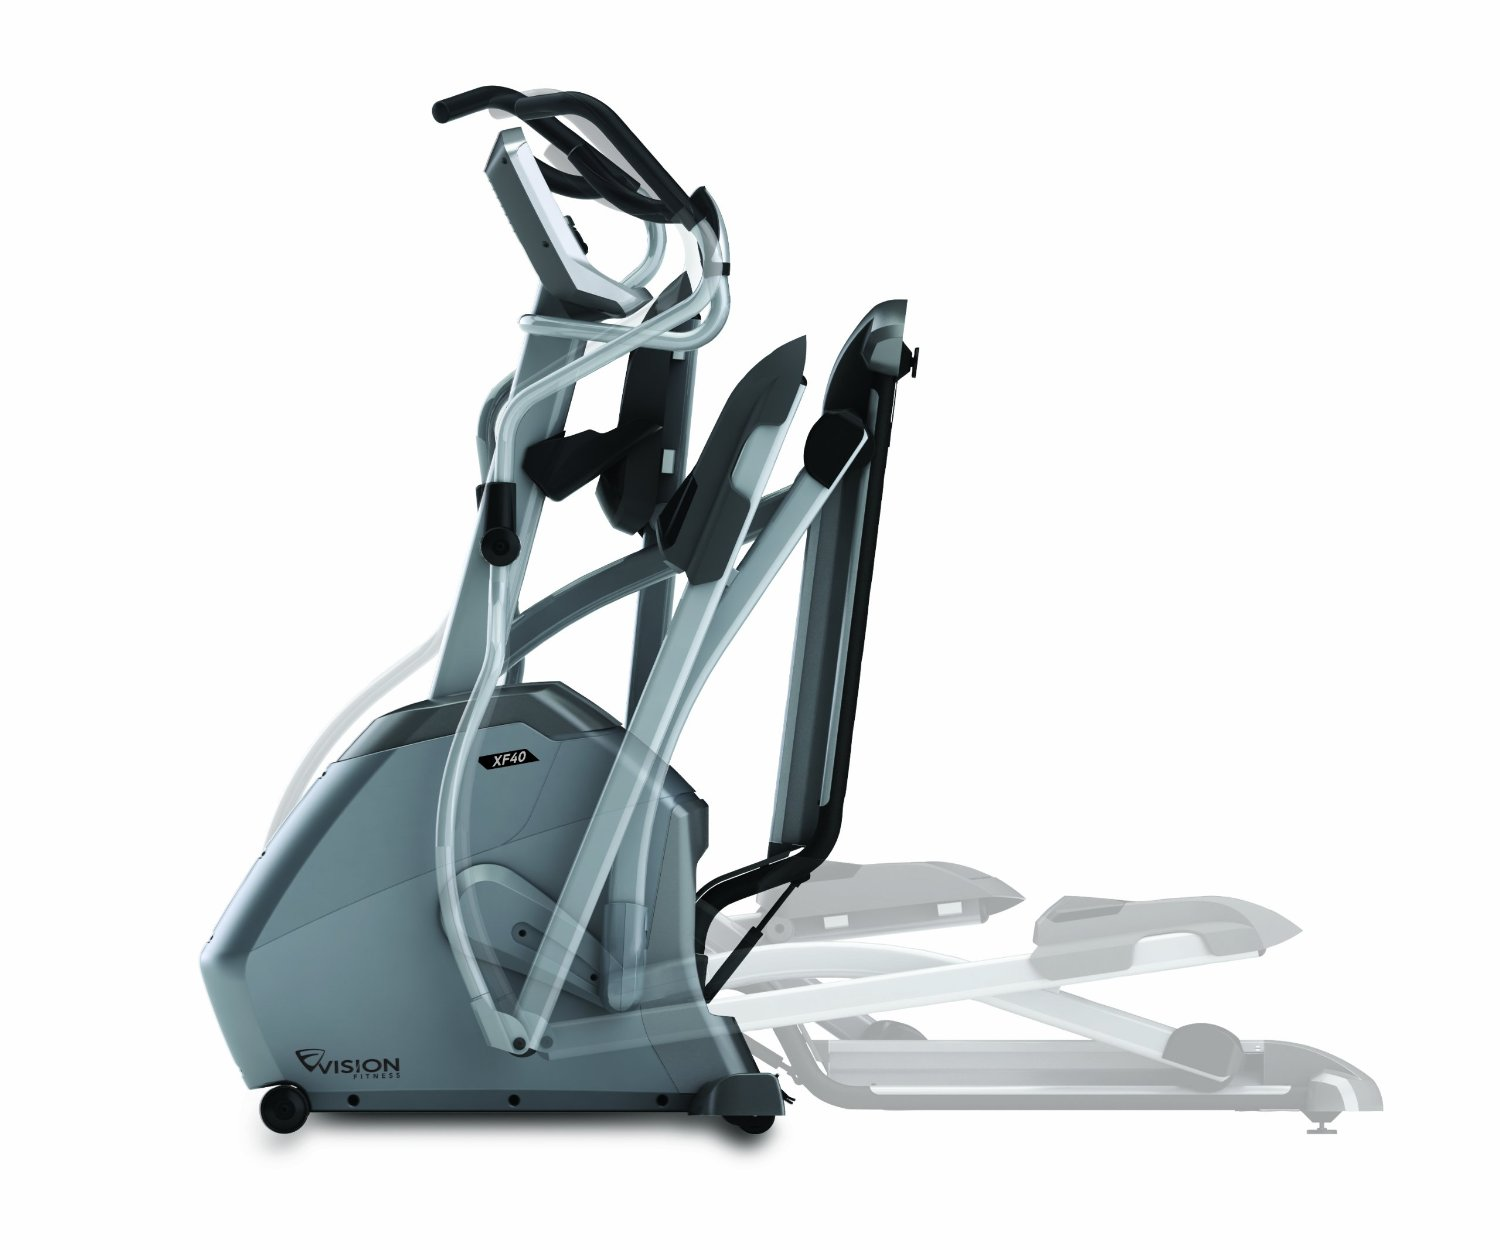 Best Folding Elliptical Machines For Home Use